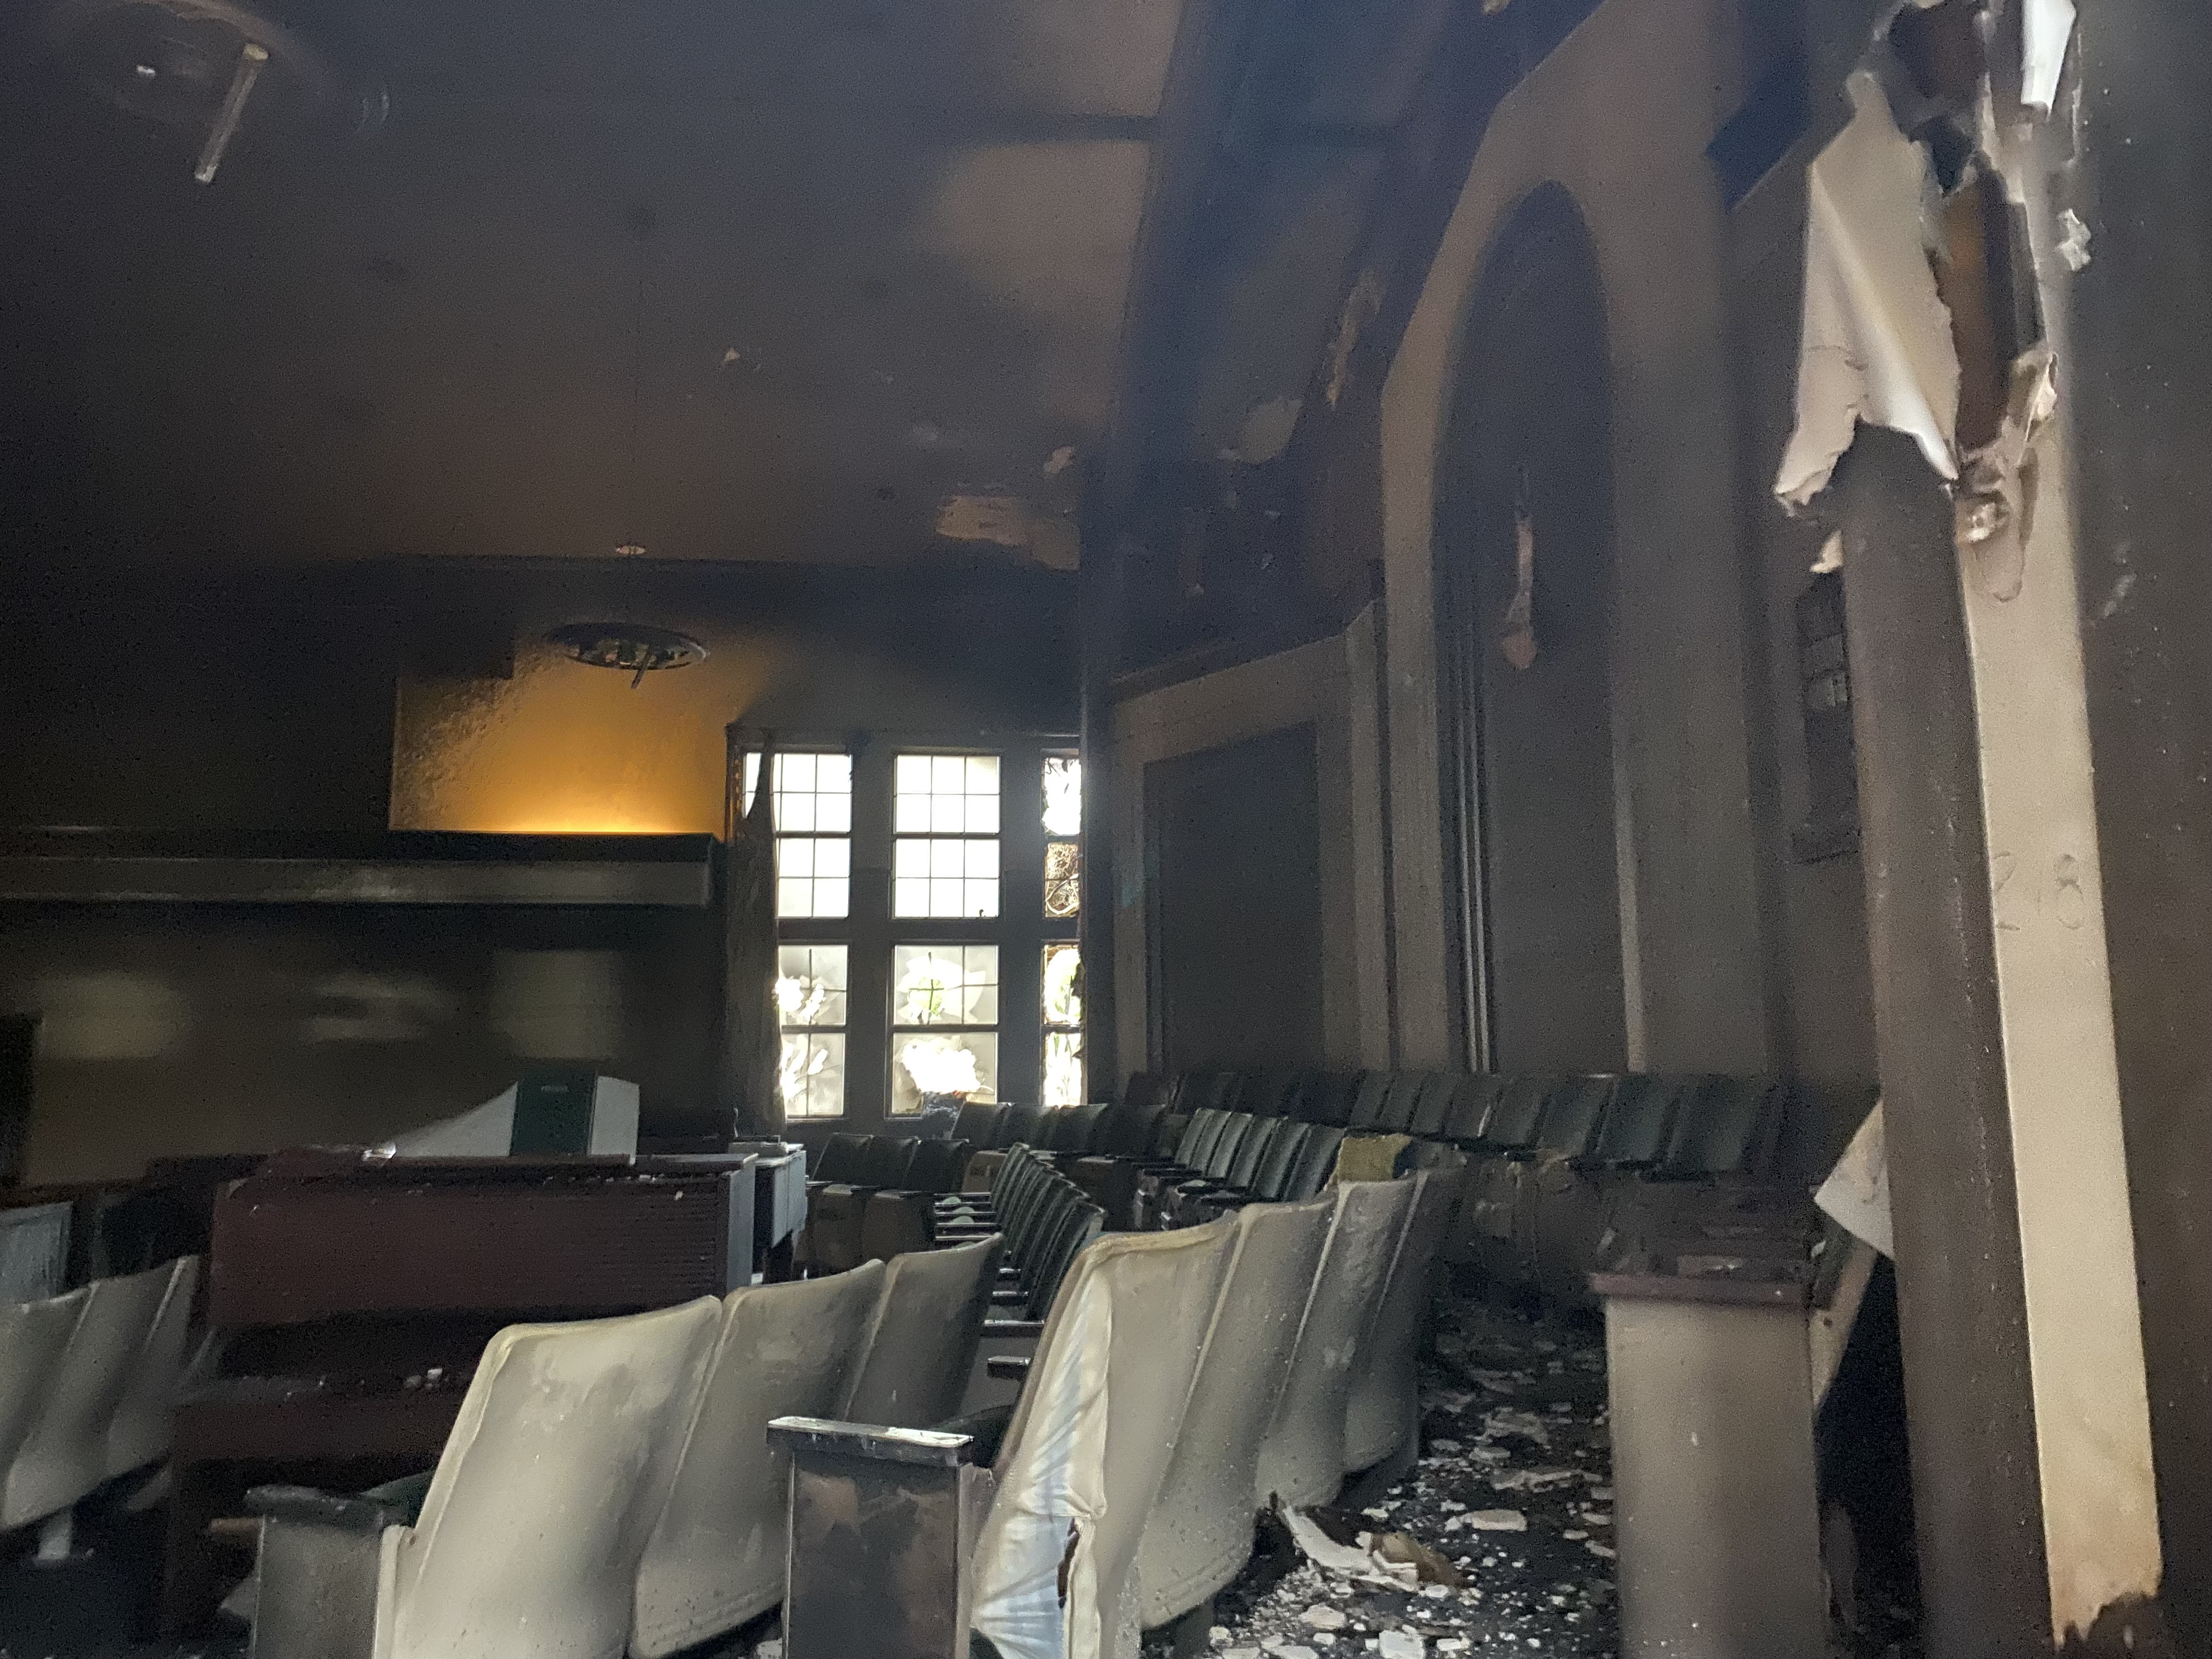 Three meetinghouses of The Church of Jesus Christ of Latter-day Saints across St. George caught fire early Tuesday.